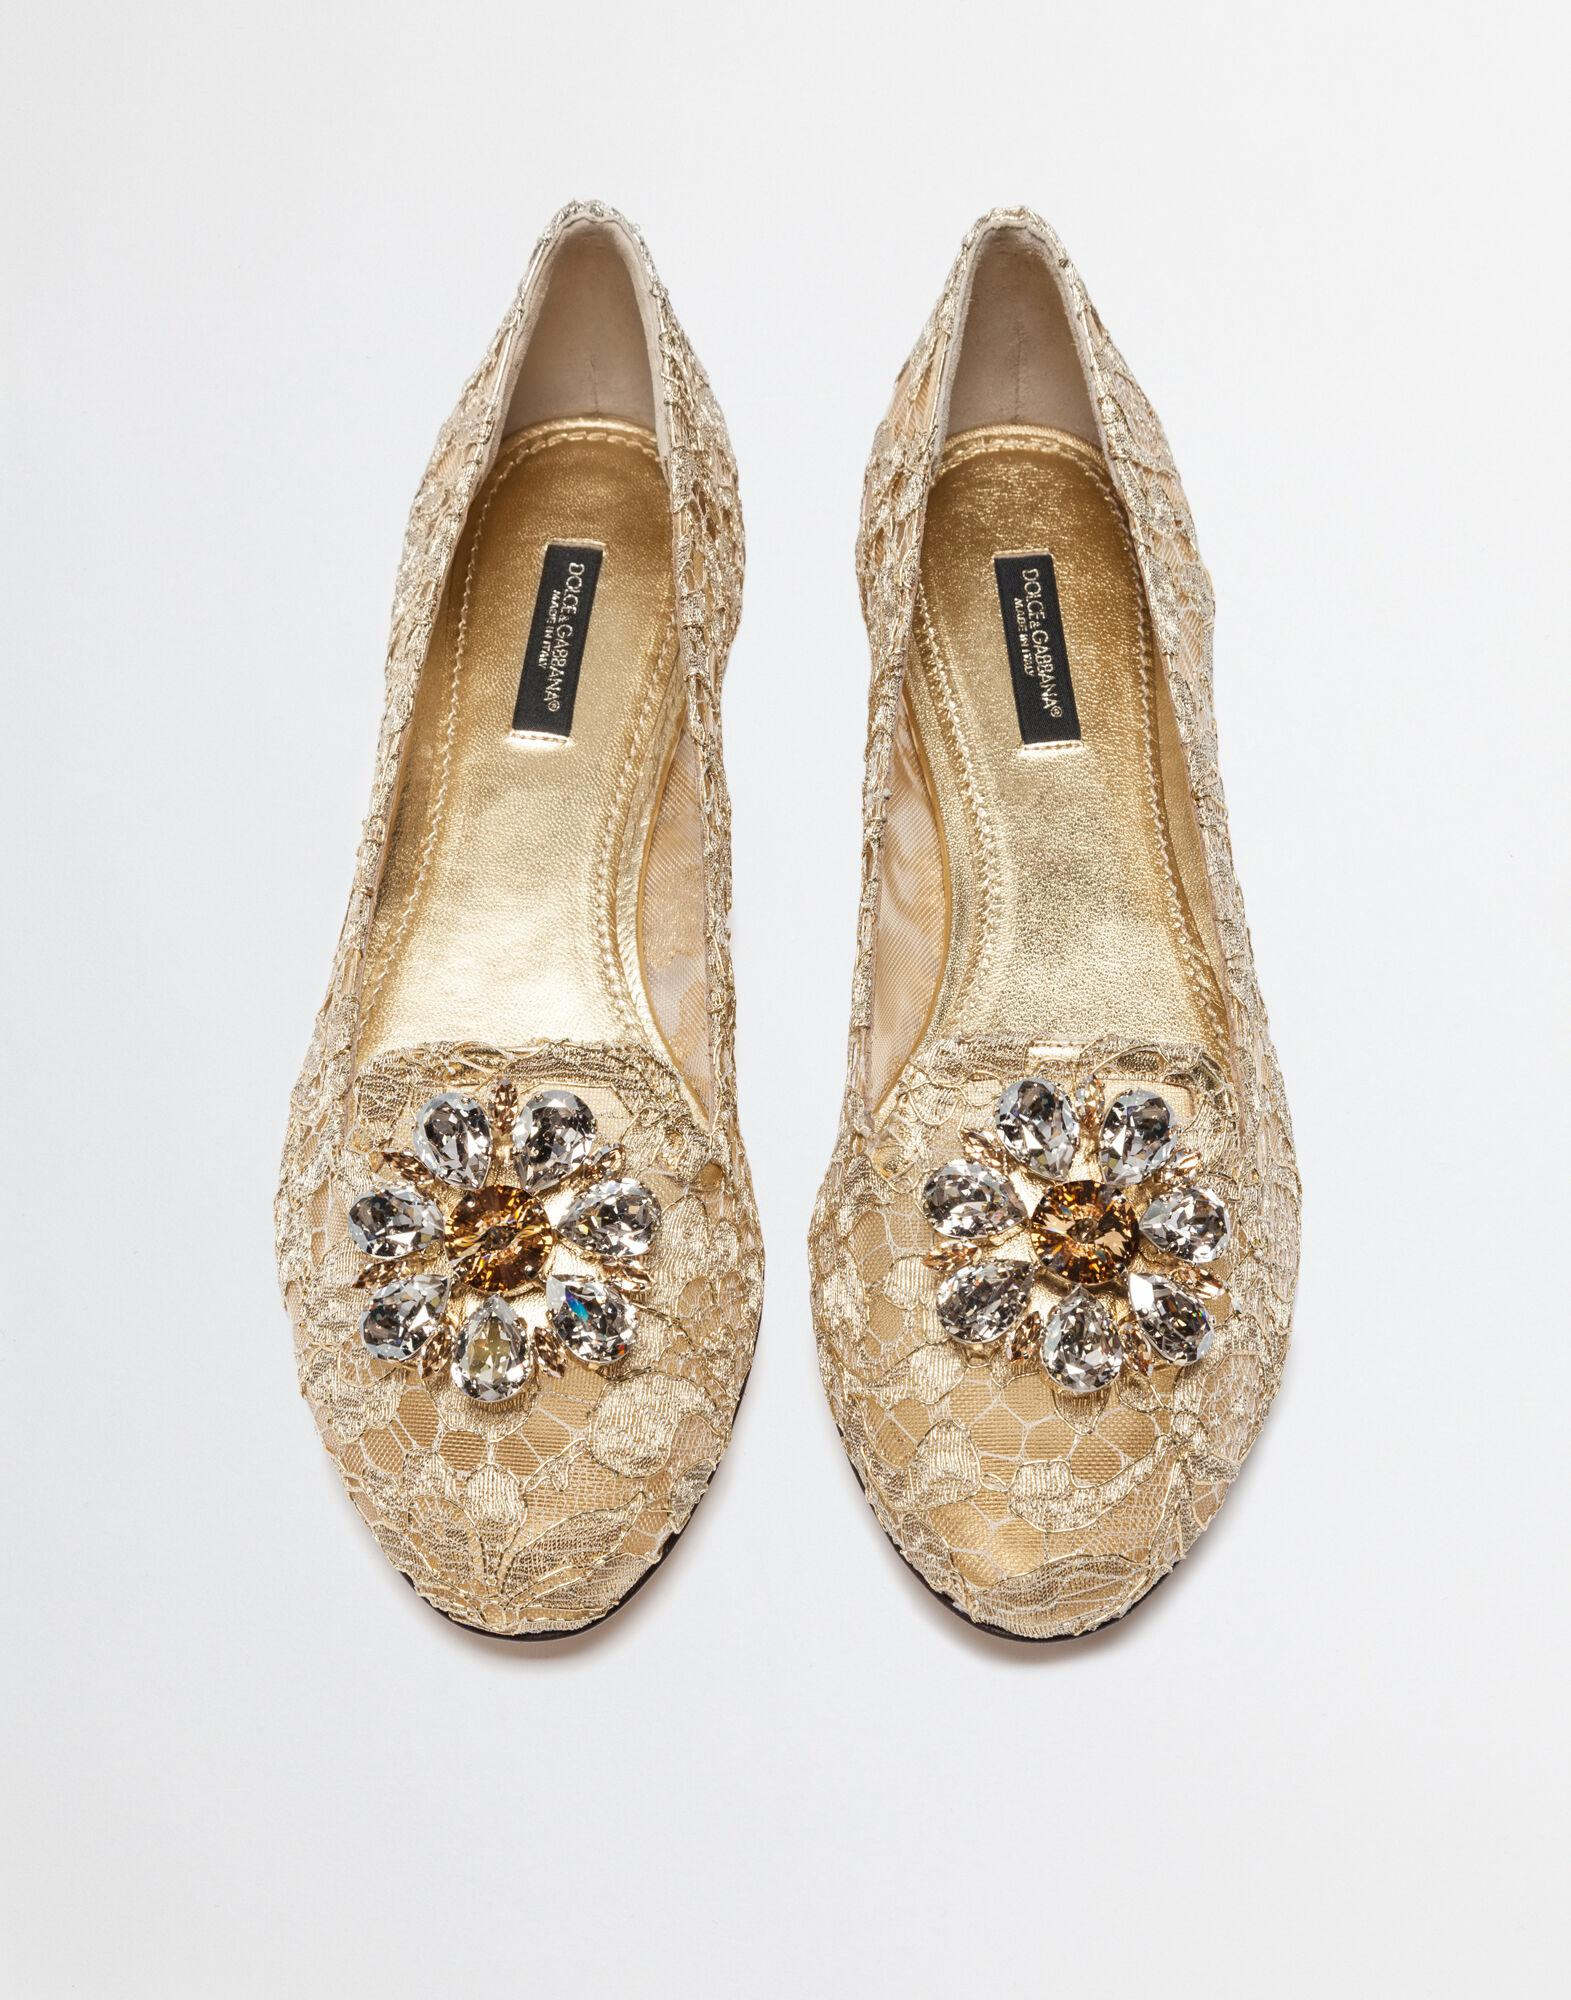 Slipper in Taormina lurex lace with crystals 2